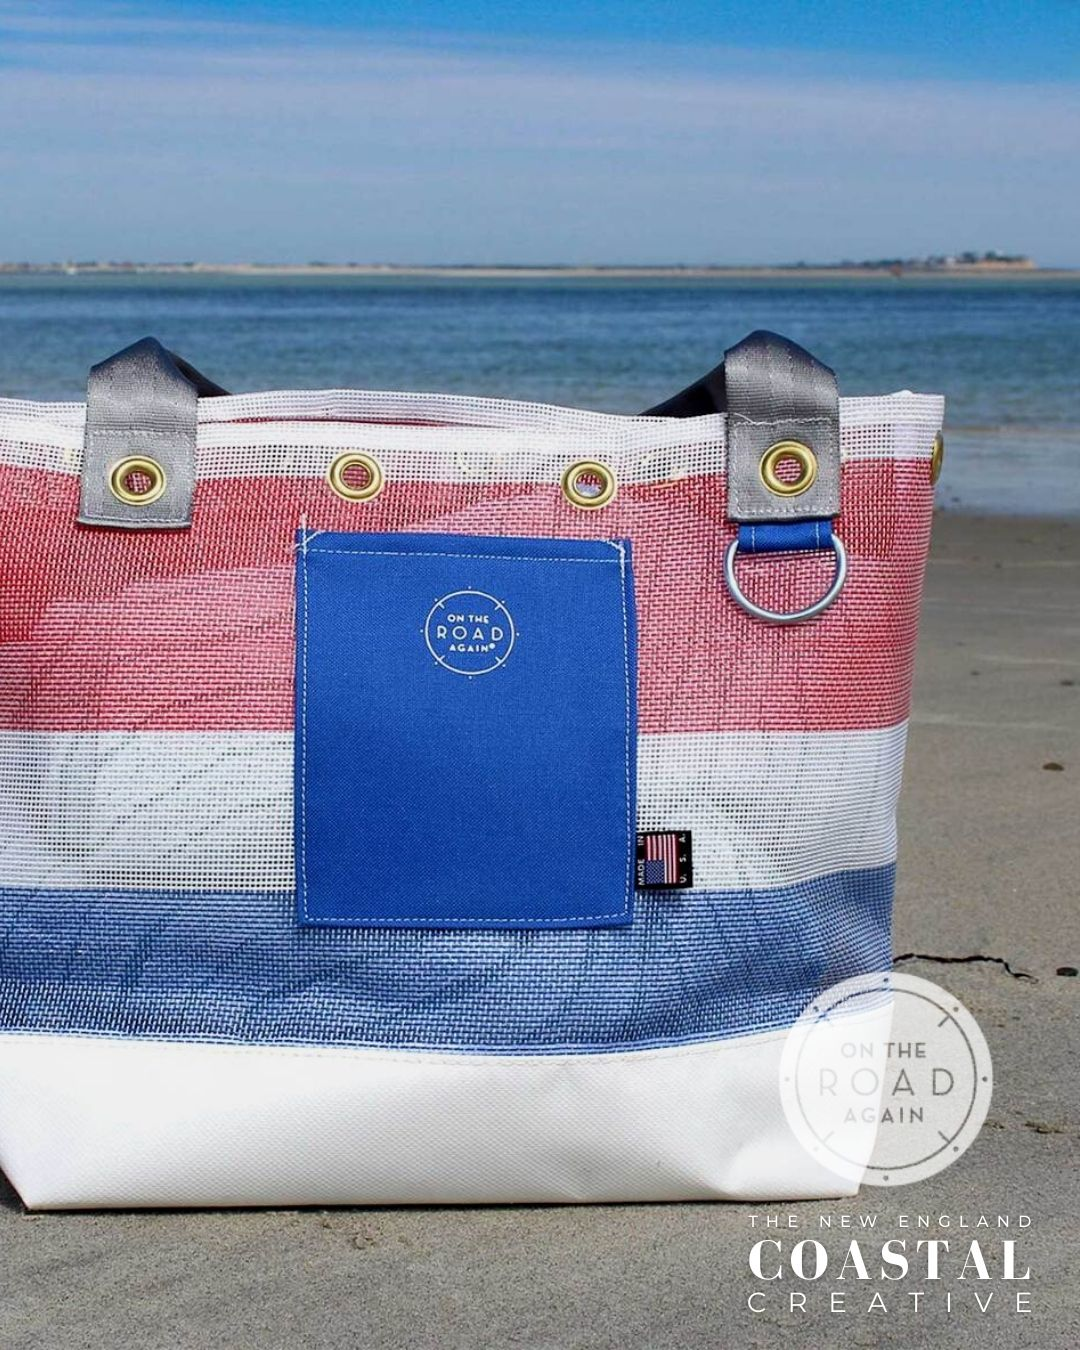 Mary-DiMauro-On-The-Road-Again-Bags-8